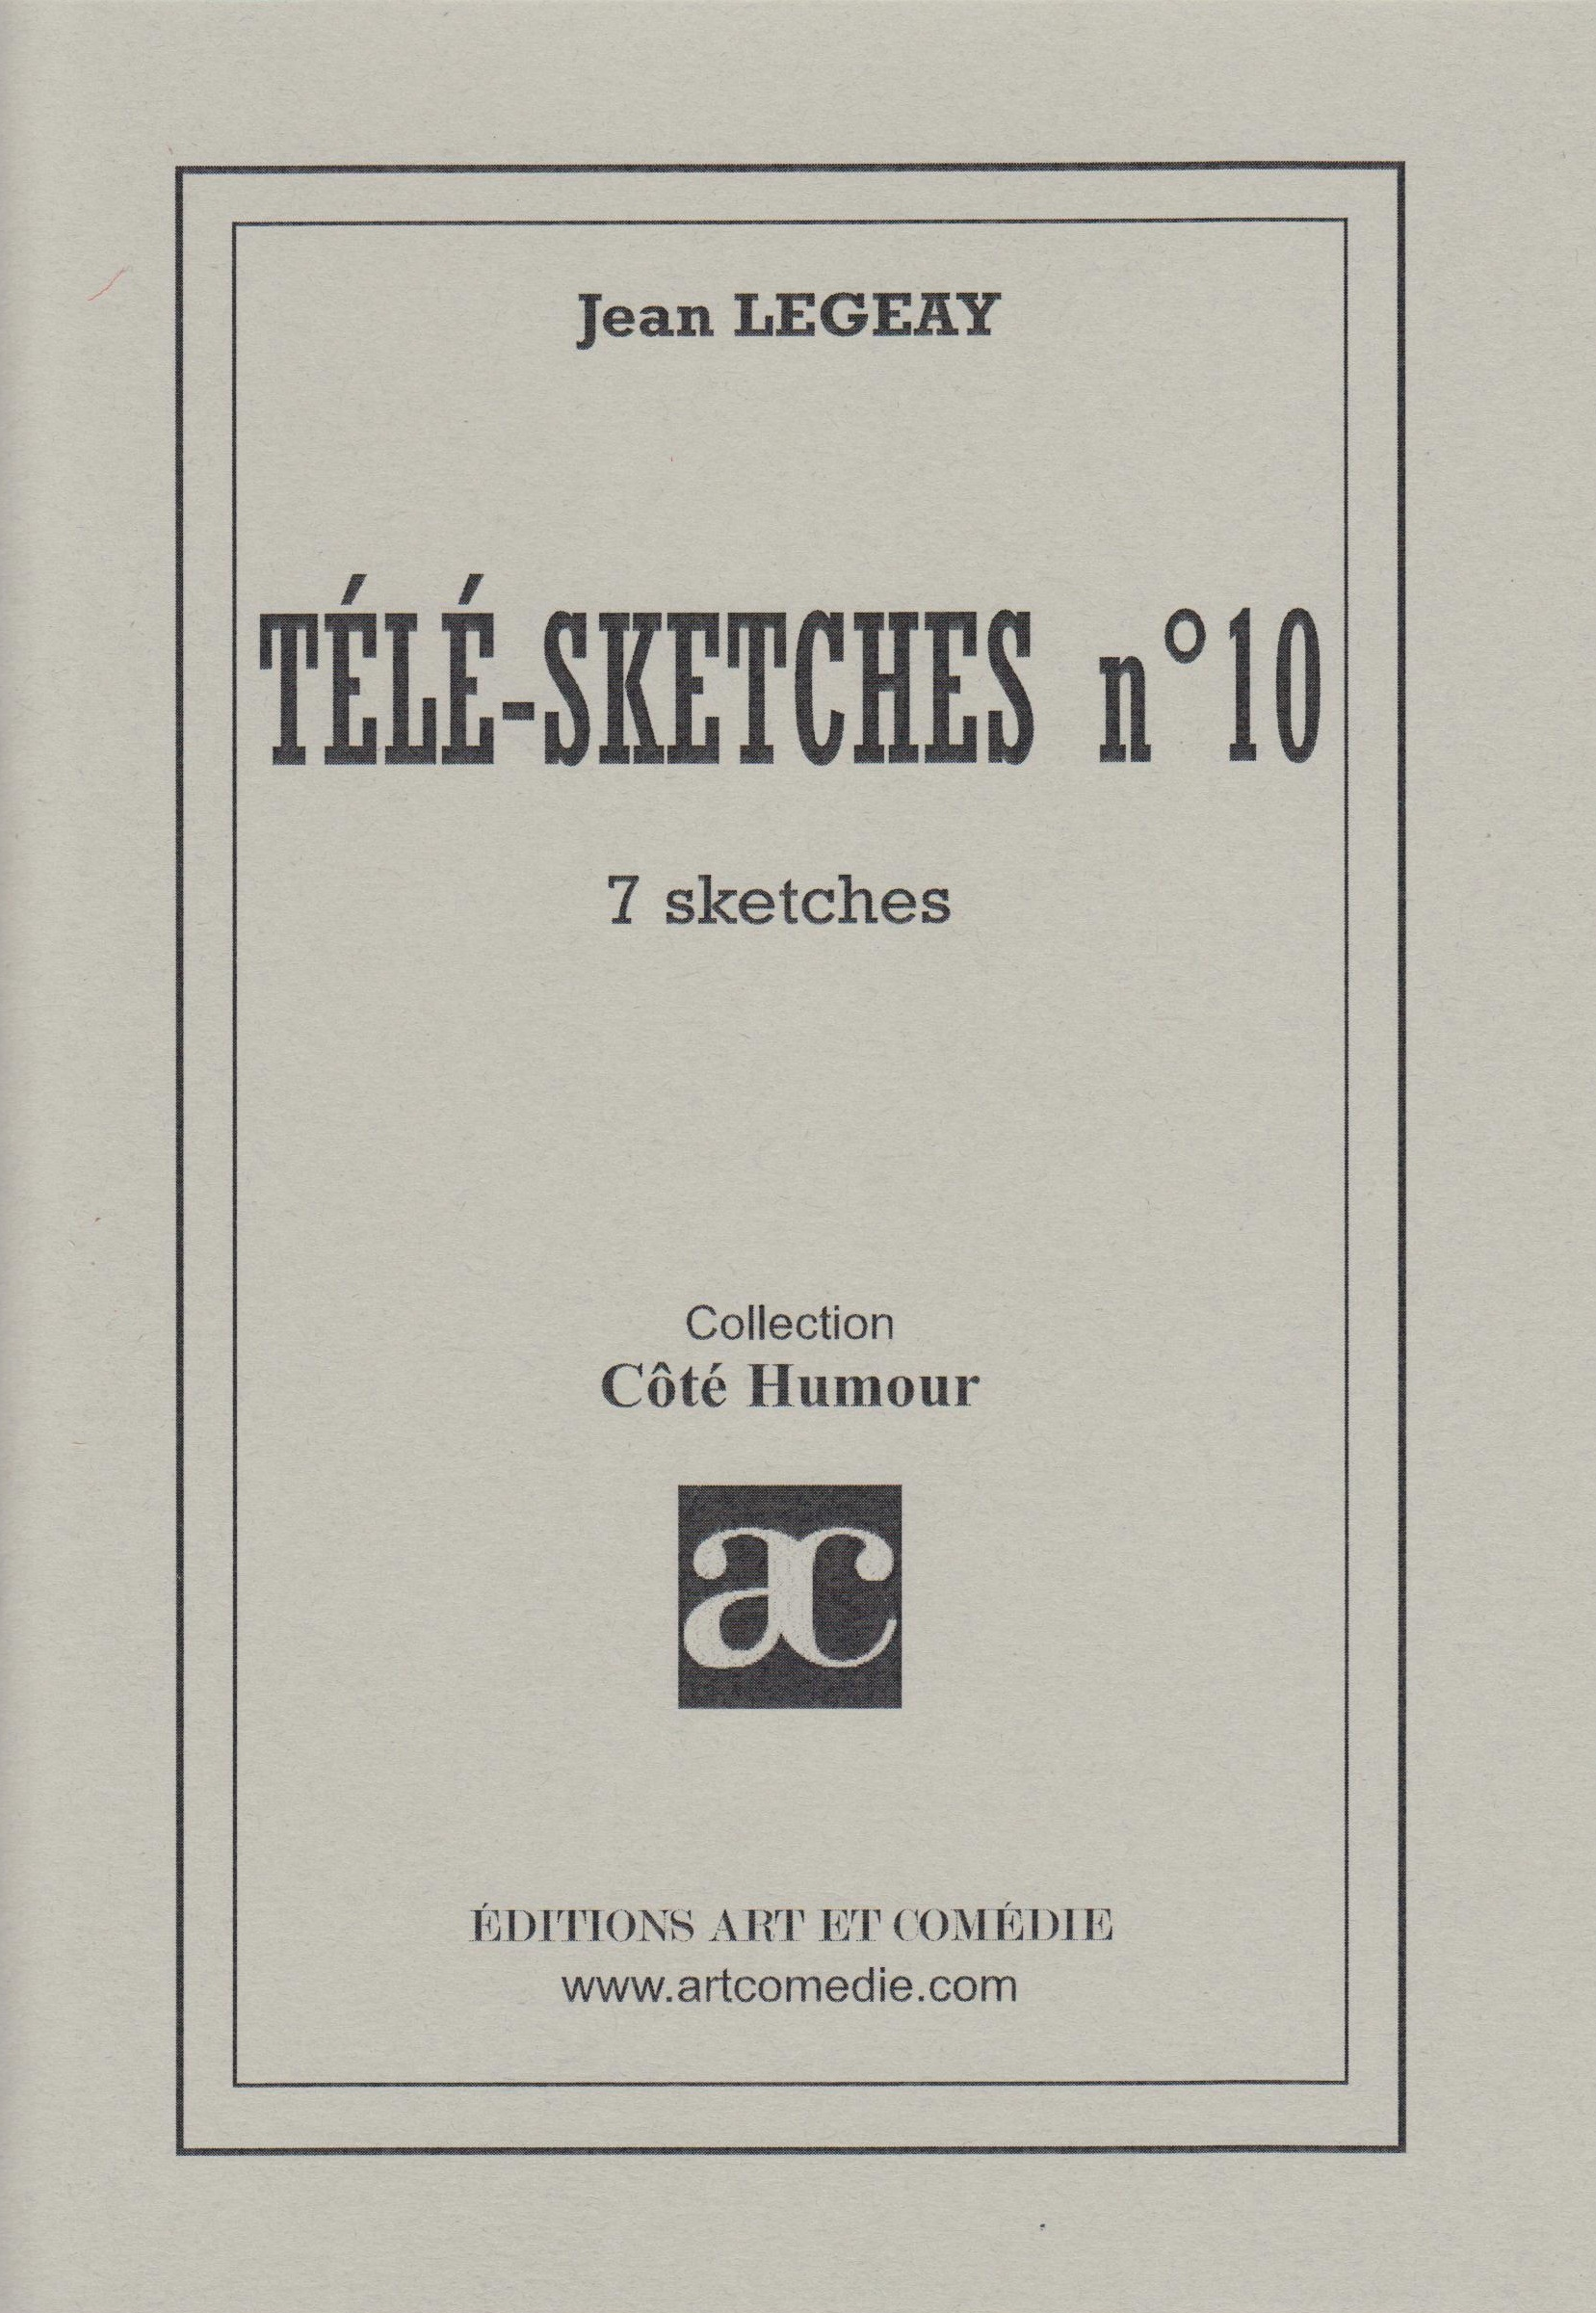 TELE-SKETCHES N 10